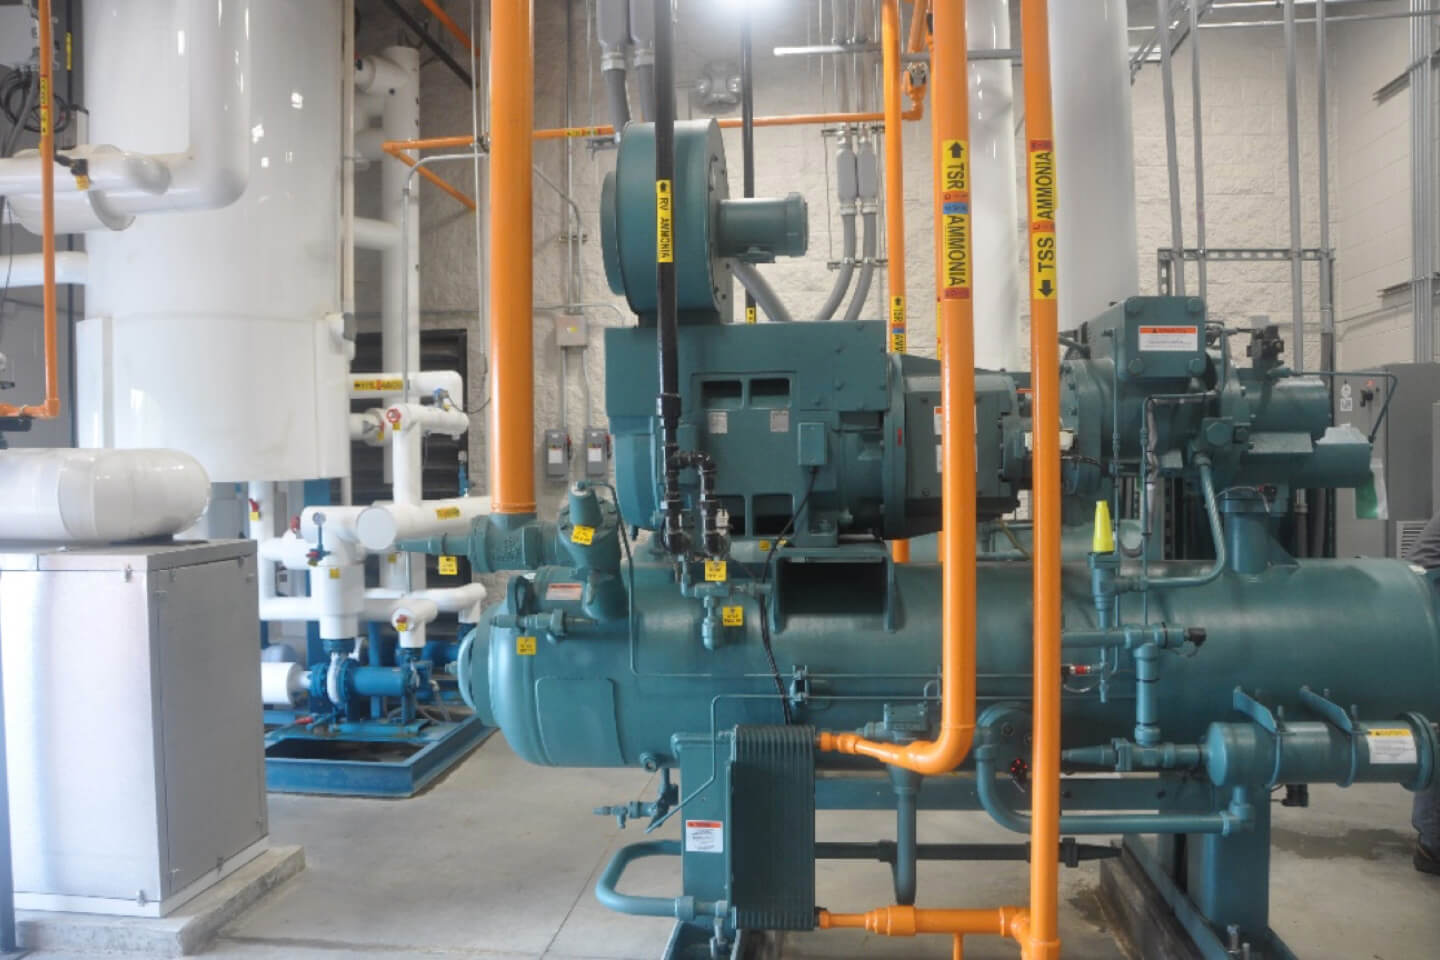 New Ammonia Refrigeration System Vegetable Processing Facility